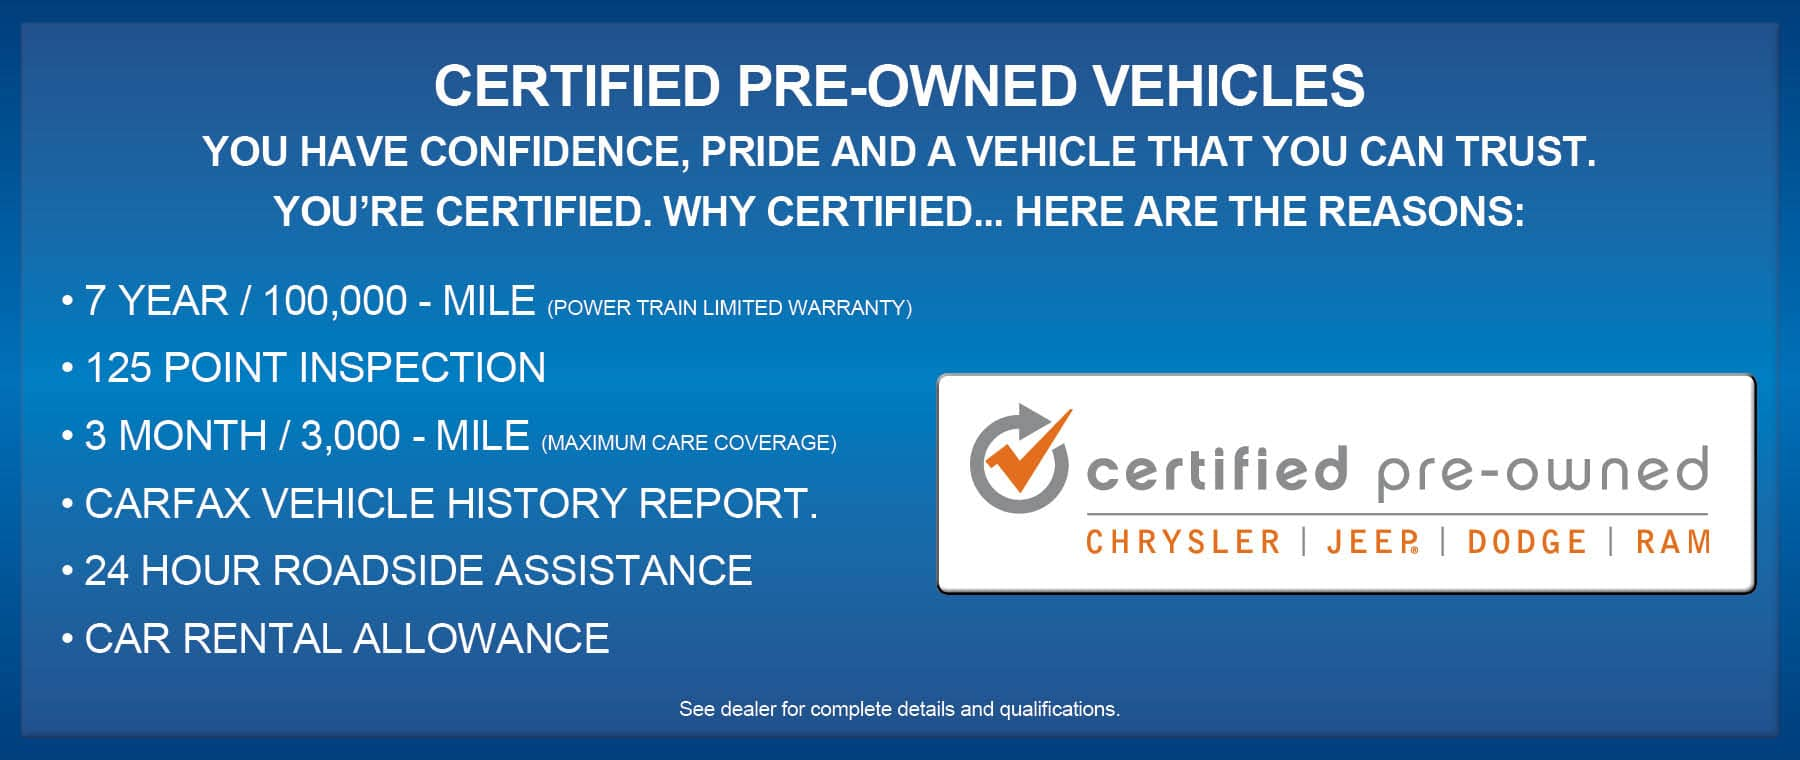 Certified PreOwned - Aventura Chrysler Jeep Dodge Ram!